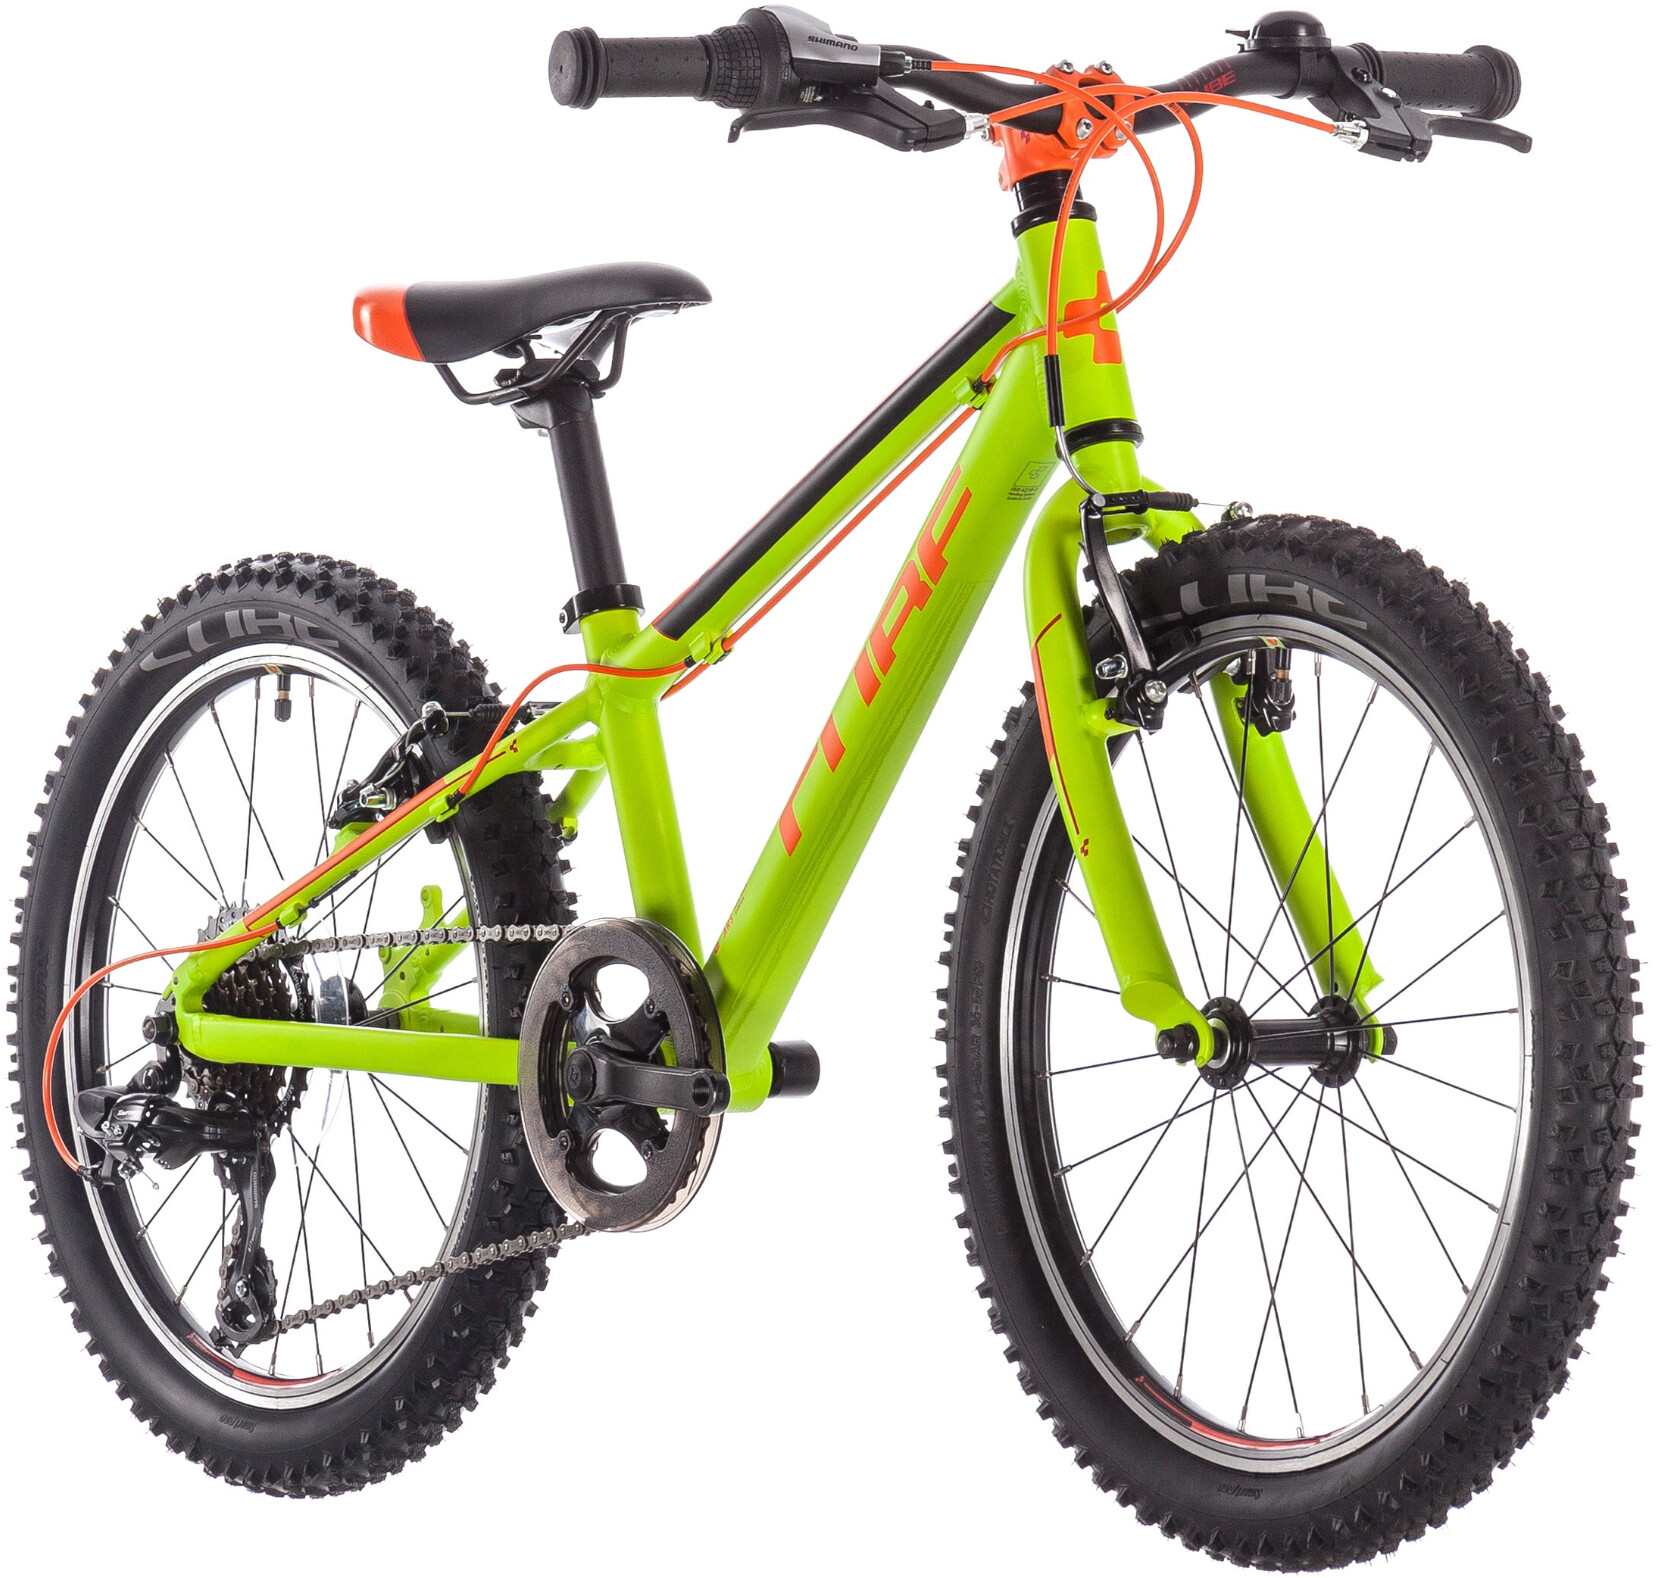 Cube Acid 200 Kids Bike (2019) | City-cykler